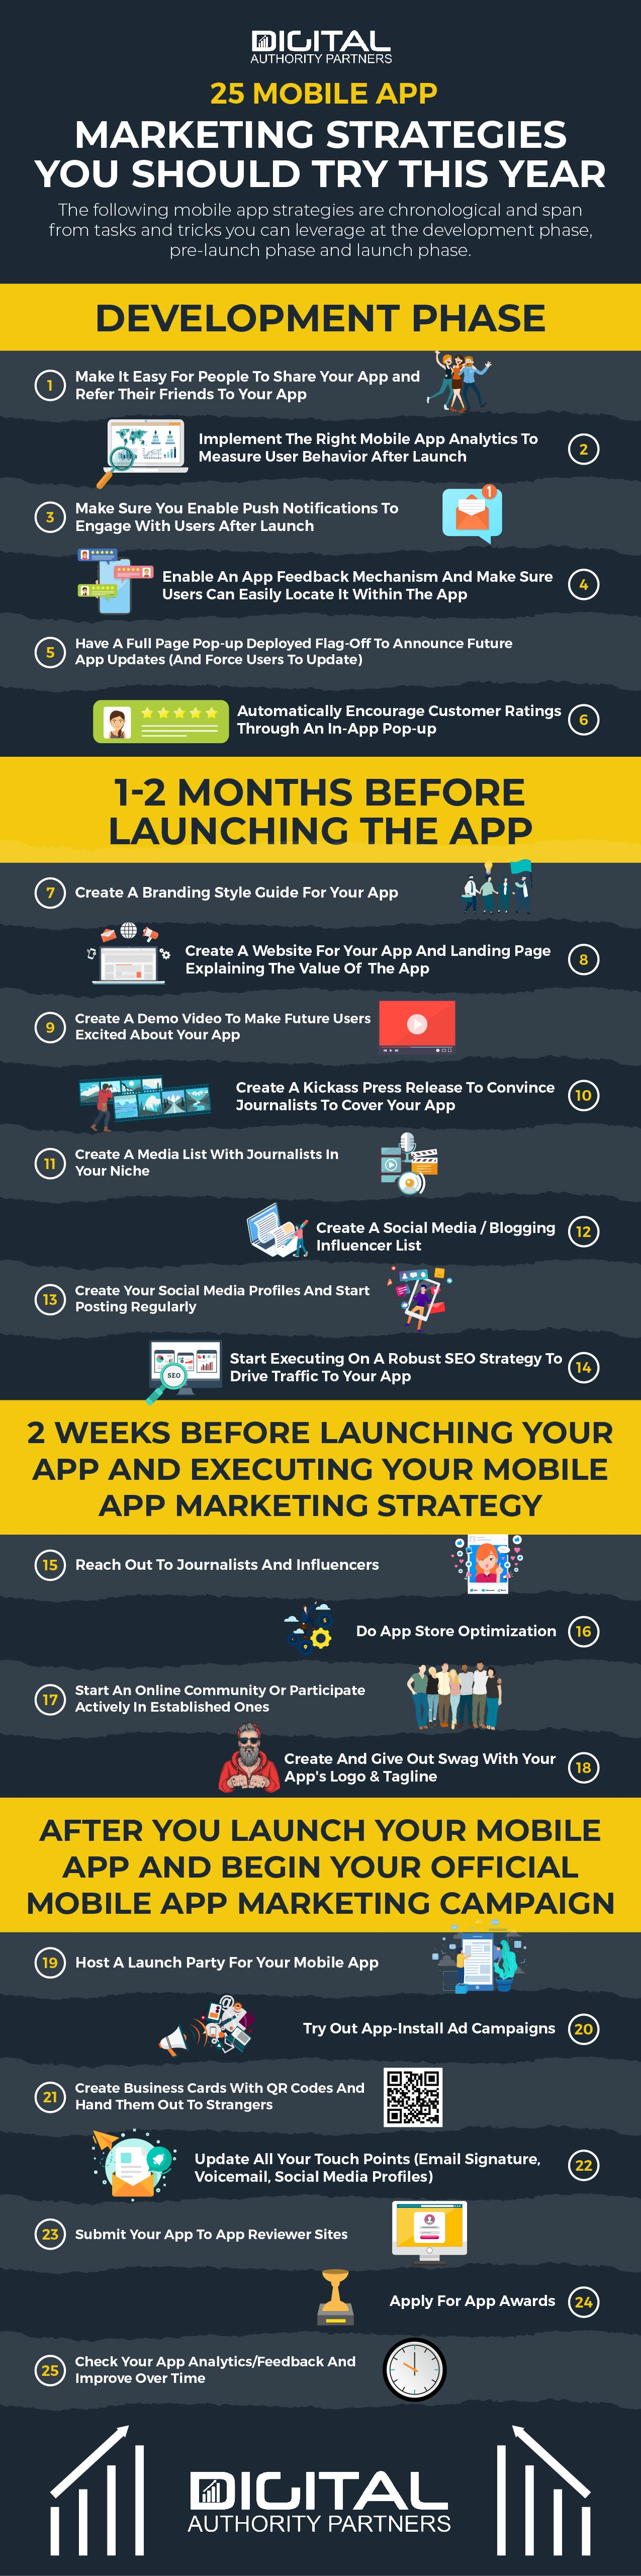 Infographic about 25 mobile app marketing strategies to try this year